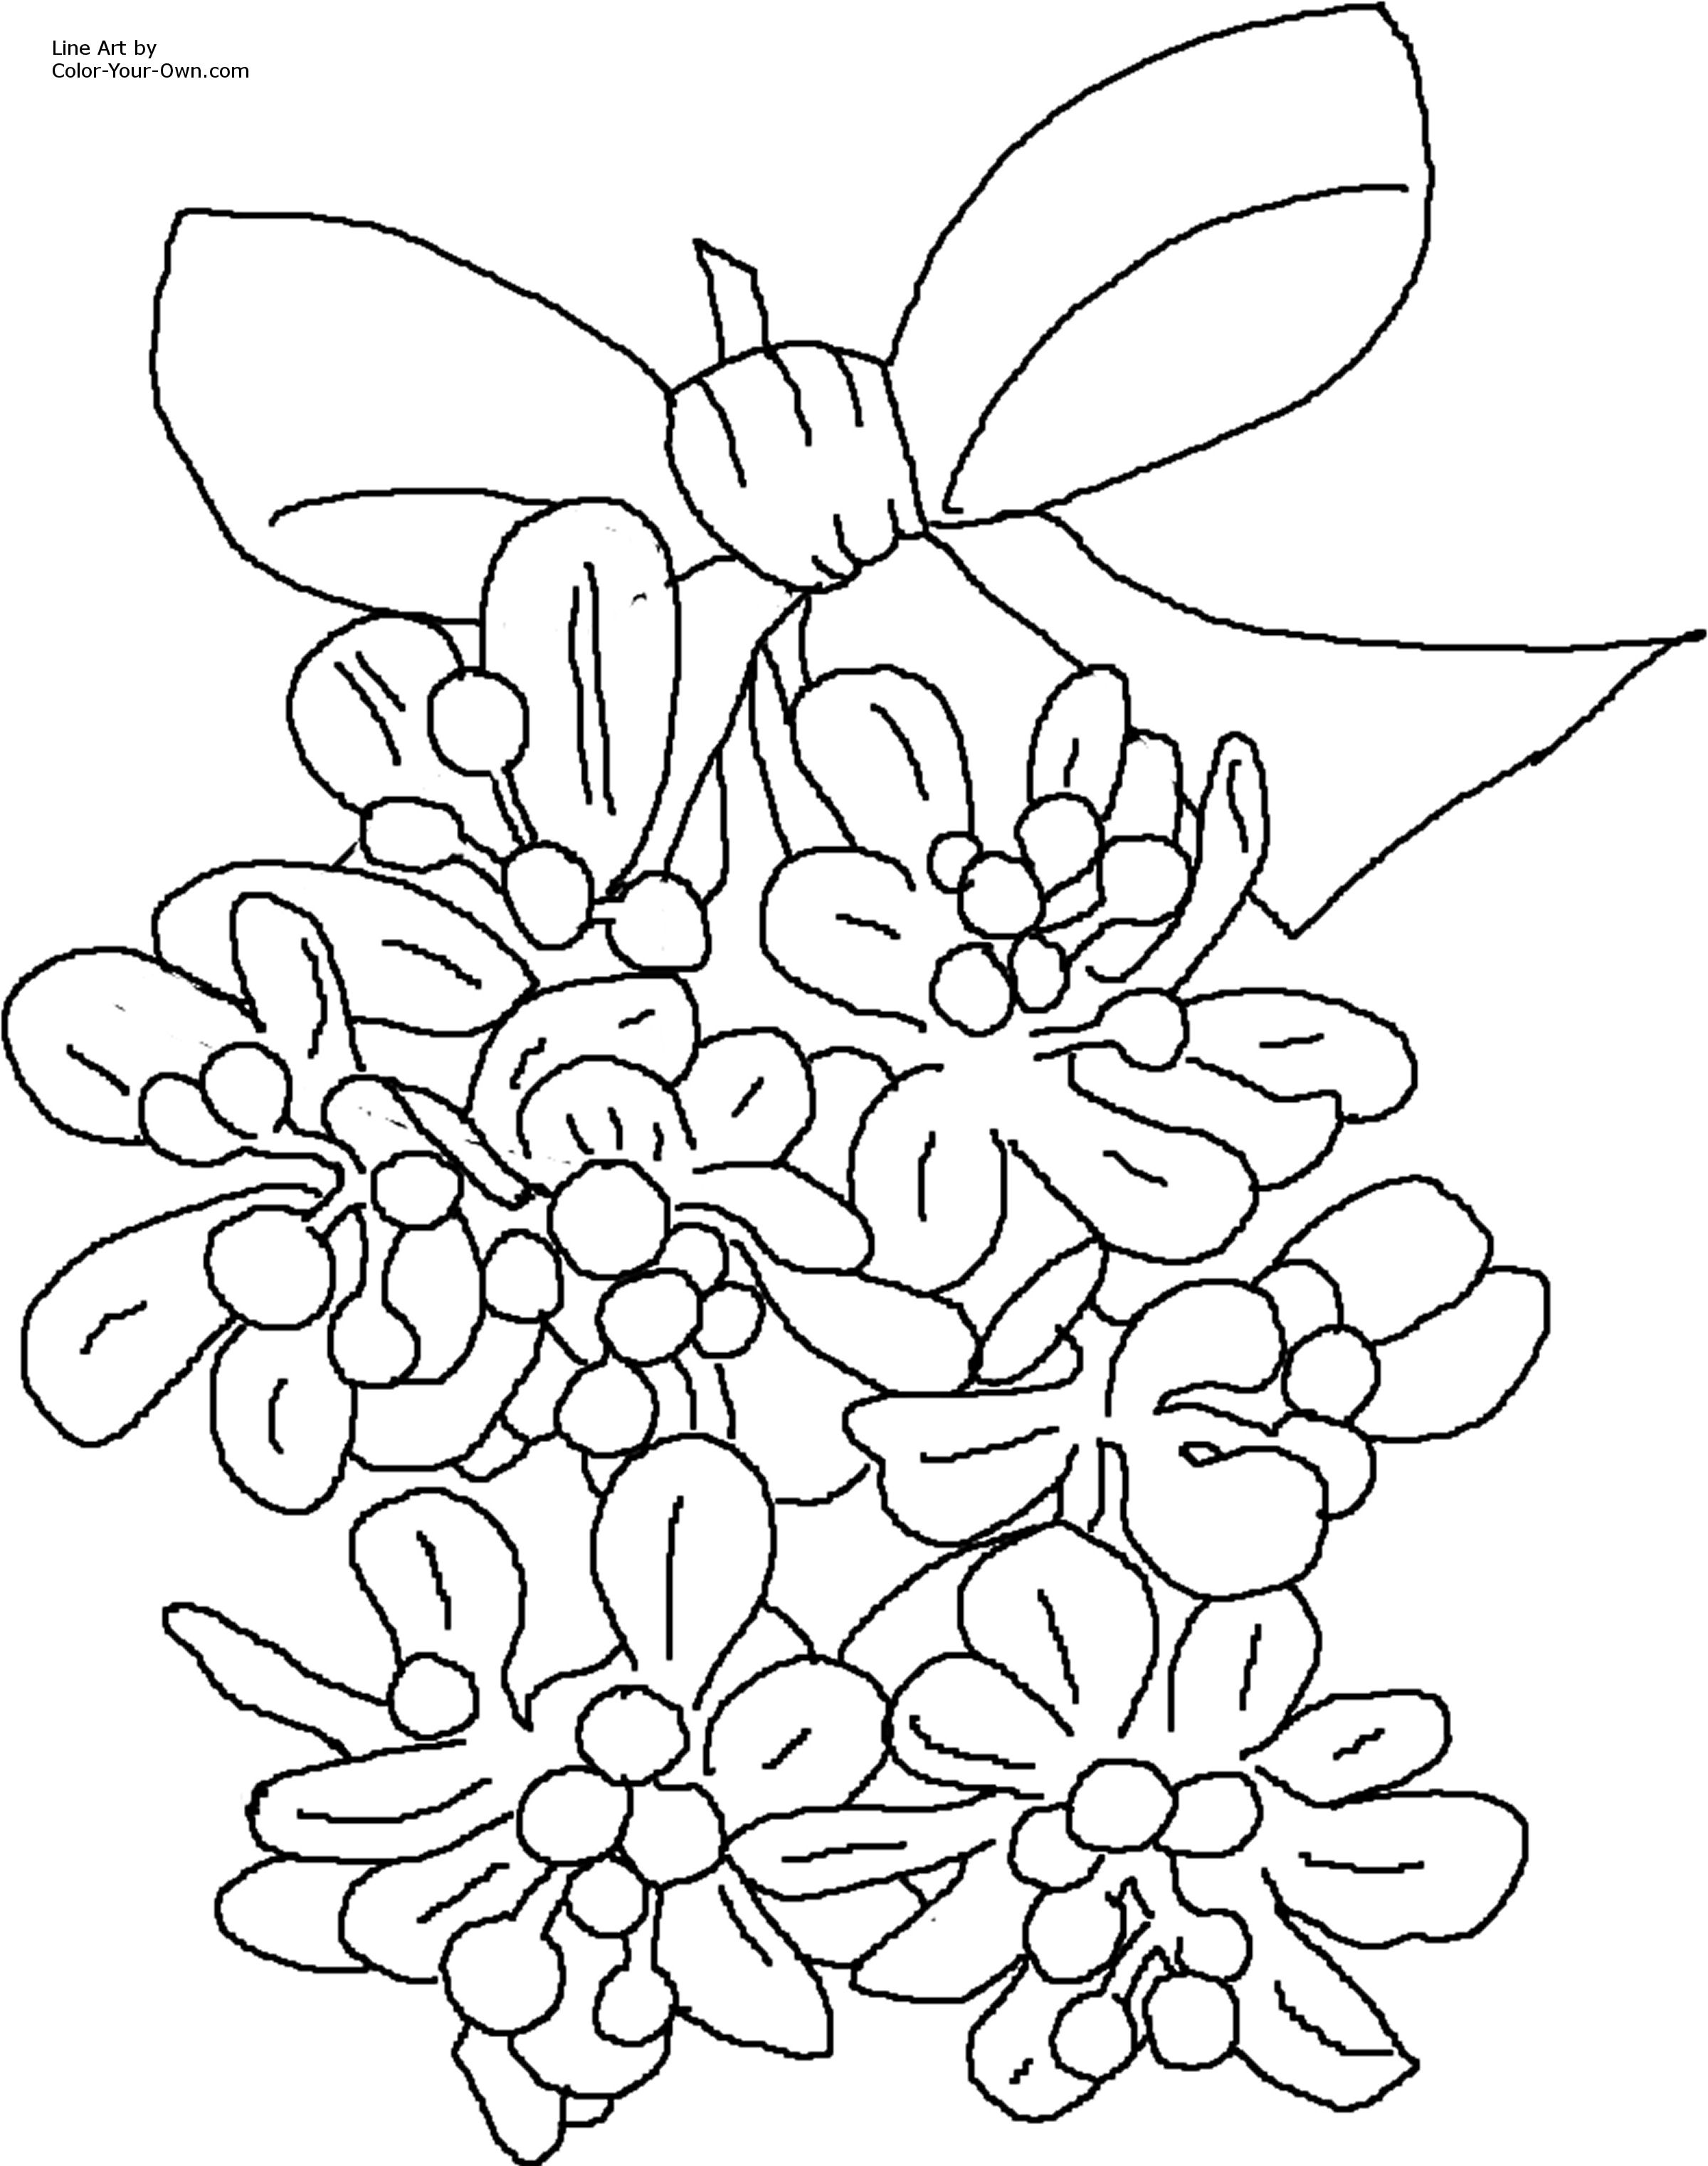 Christmas Mistletoe Coloring Page